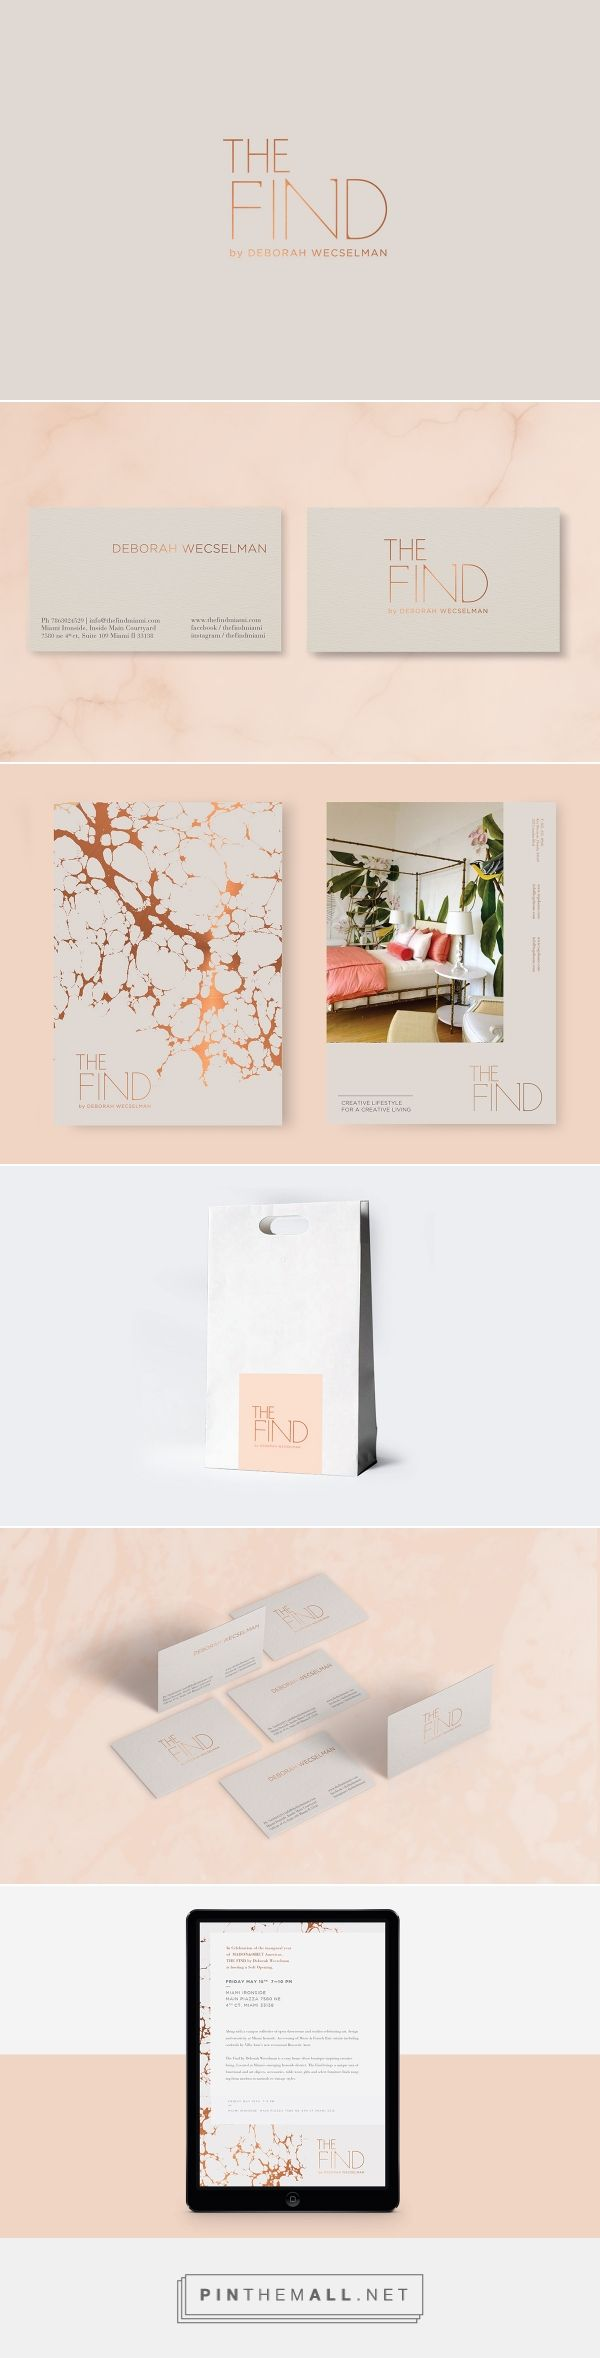 The Find Branding on Behance | Fivestar Branding – Design and Branding Agency & Inspiration Gallery